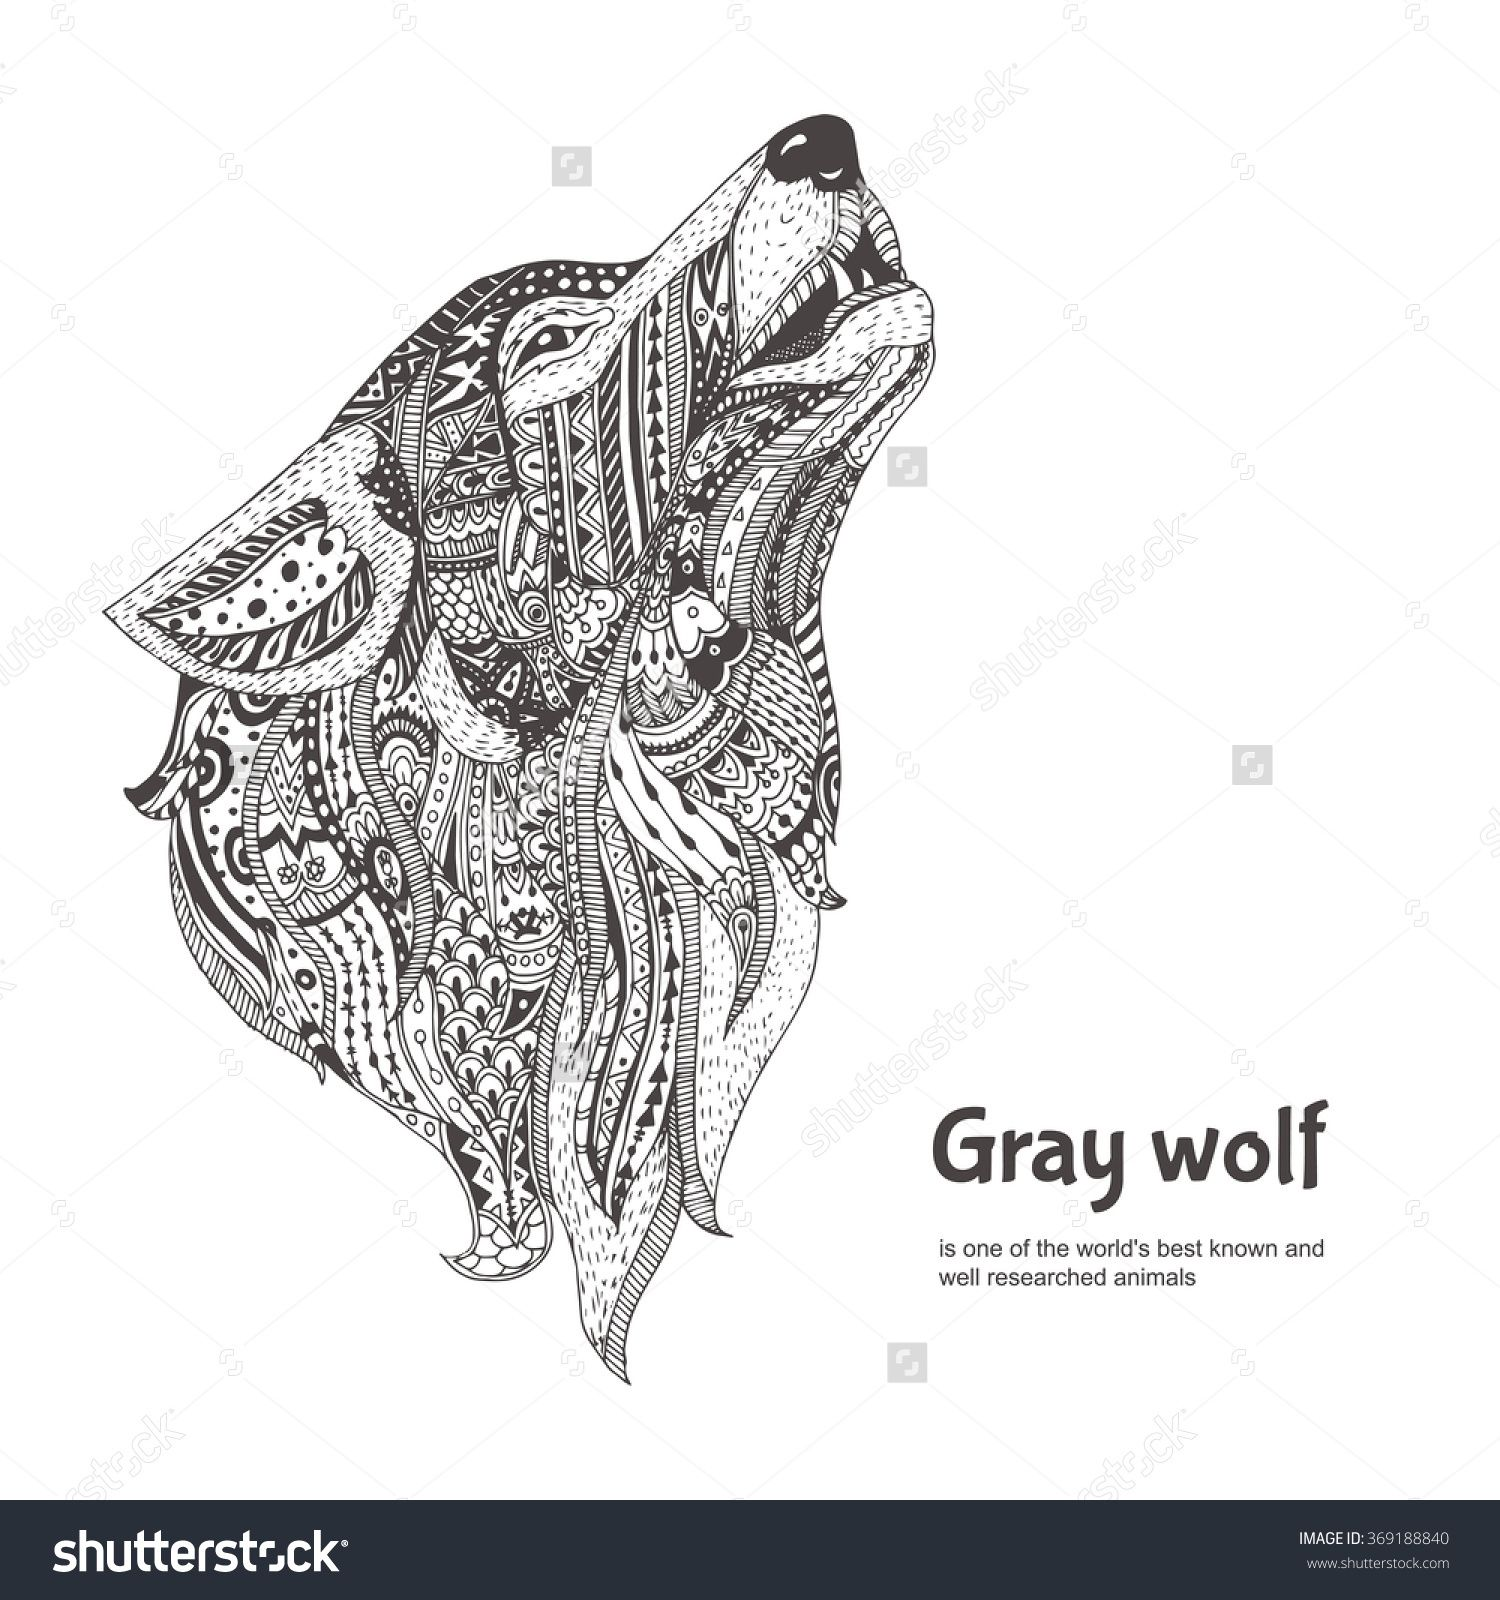 Coloring pages for adults wolf - Hand Drawn Wolf Side View With Ethnic Floral Doodle Pattern Coloring Page Zendala